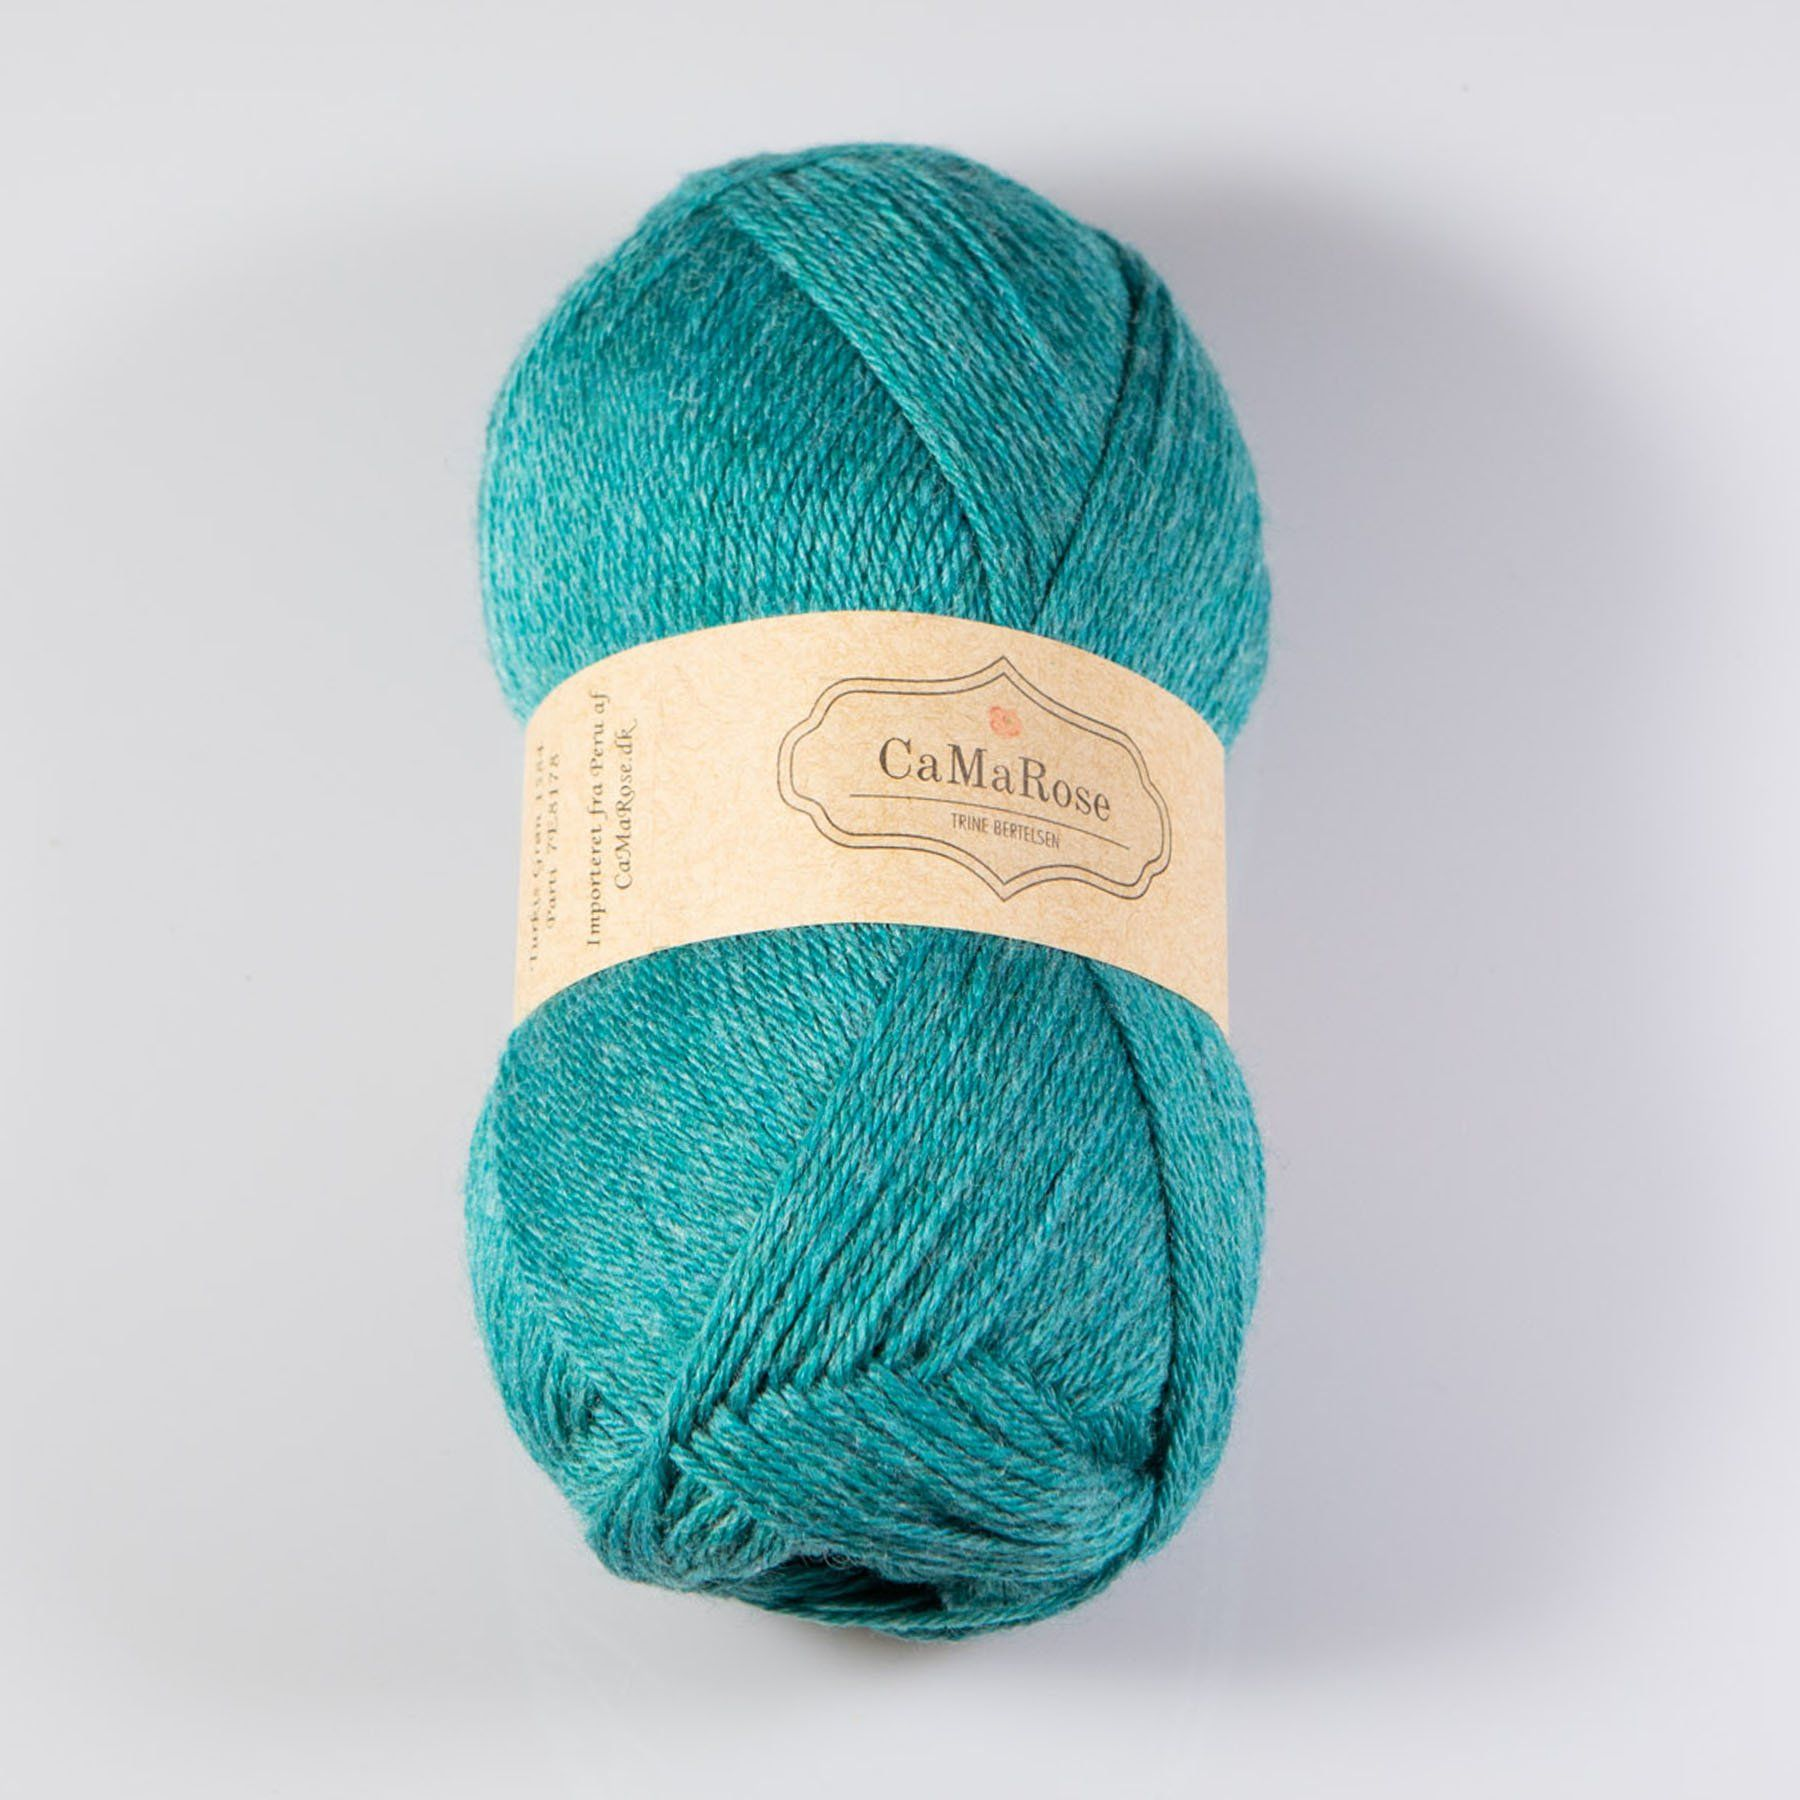 We finally found a superwash yarn that is completely environmentally-friendly! Yay! It is a super-soft, 100% merino mulesing-free wool that is a total dream to knit with. This yarn is perfect for baby clothes, blankets, mitts, socks, scarves, light cardigans or sweaters. Did we say it is super-soft and it doesn't itch? Love it Yaku is produced with loving care to the environment, animal welfare and people: the spinning mill buys purely animal-based merino fiber for the sake of animal welfare, is